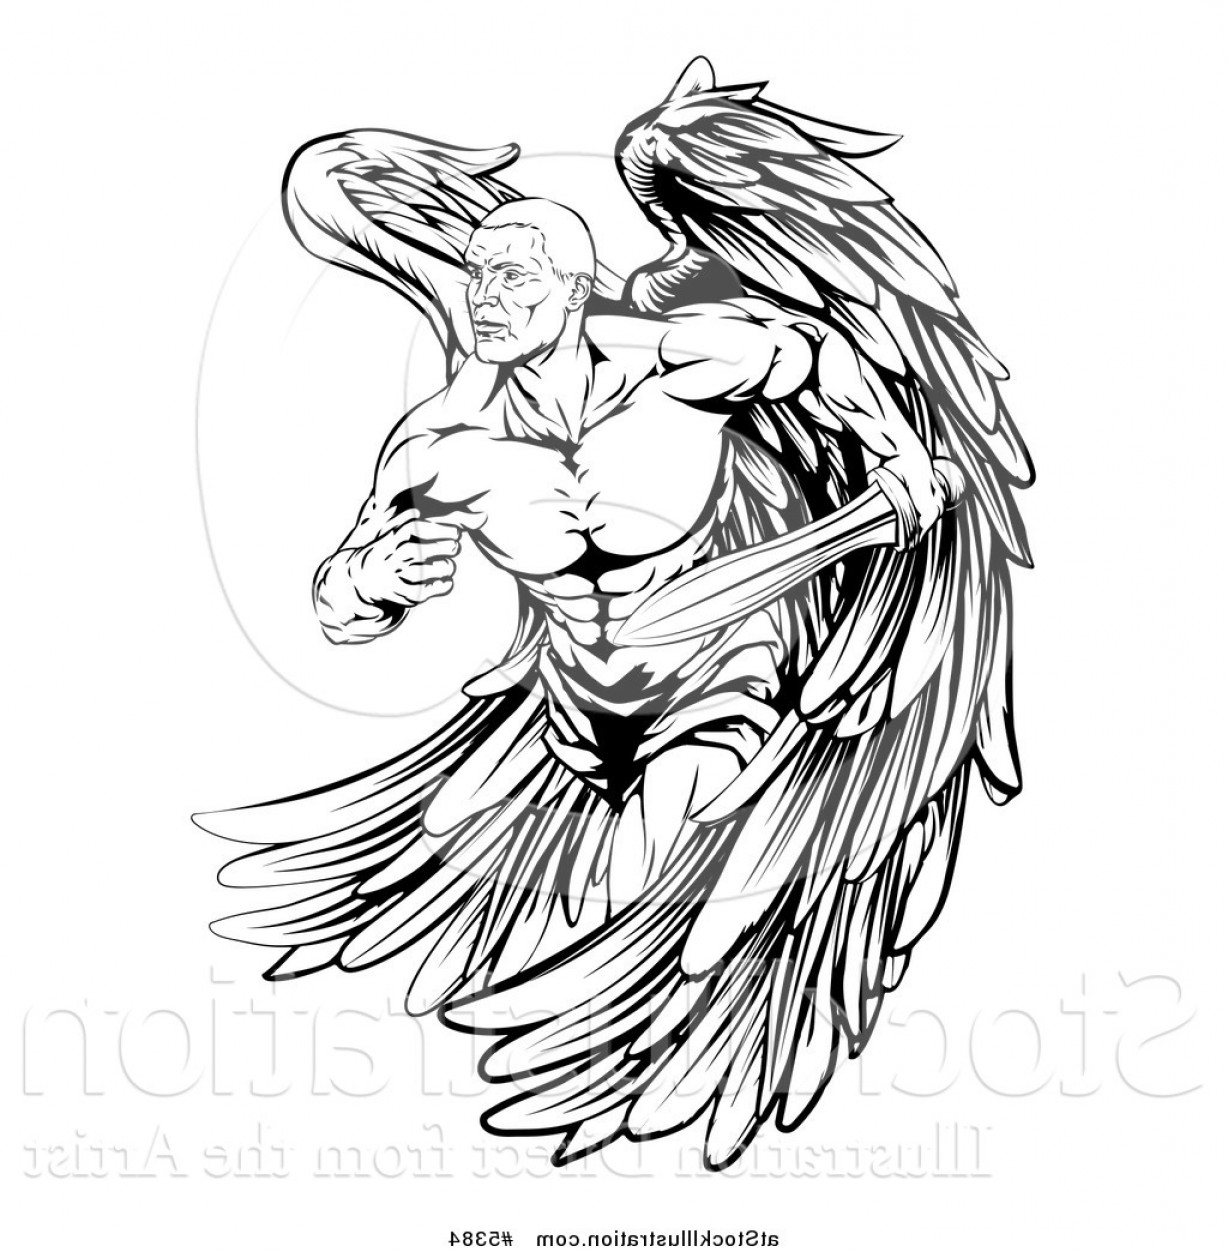 Vector Hi Res Black And White Wing: Vector Illustration Of A Black And White Muscular Male Guardian Angel With A Sword By Atstockillustration